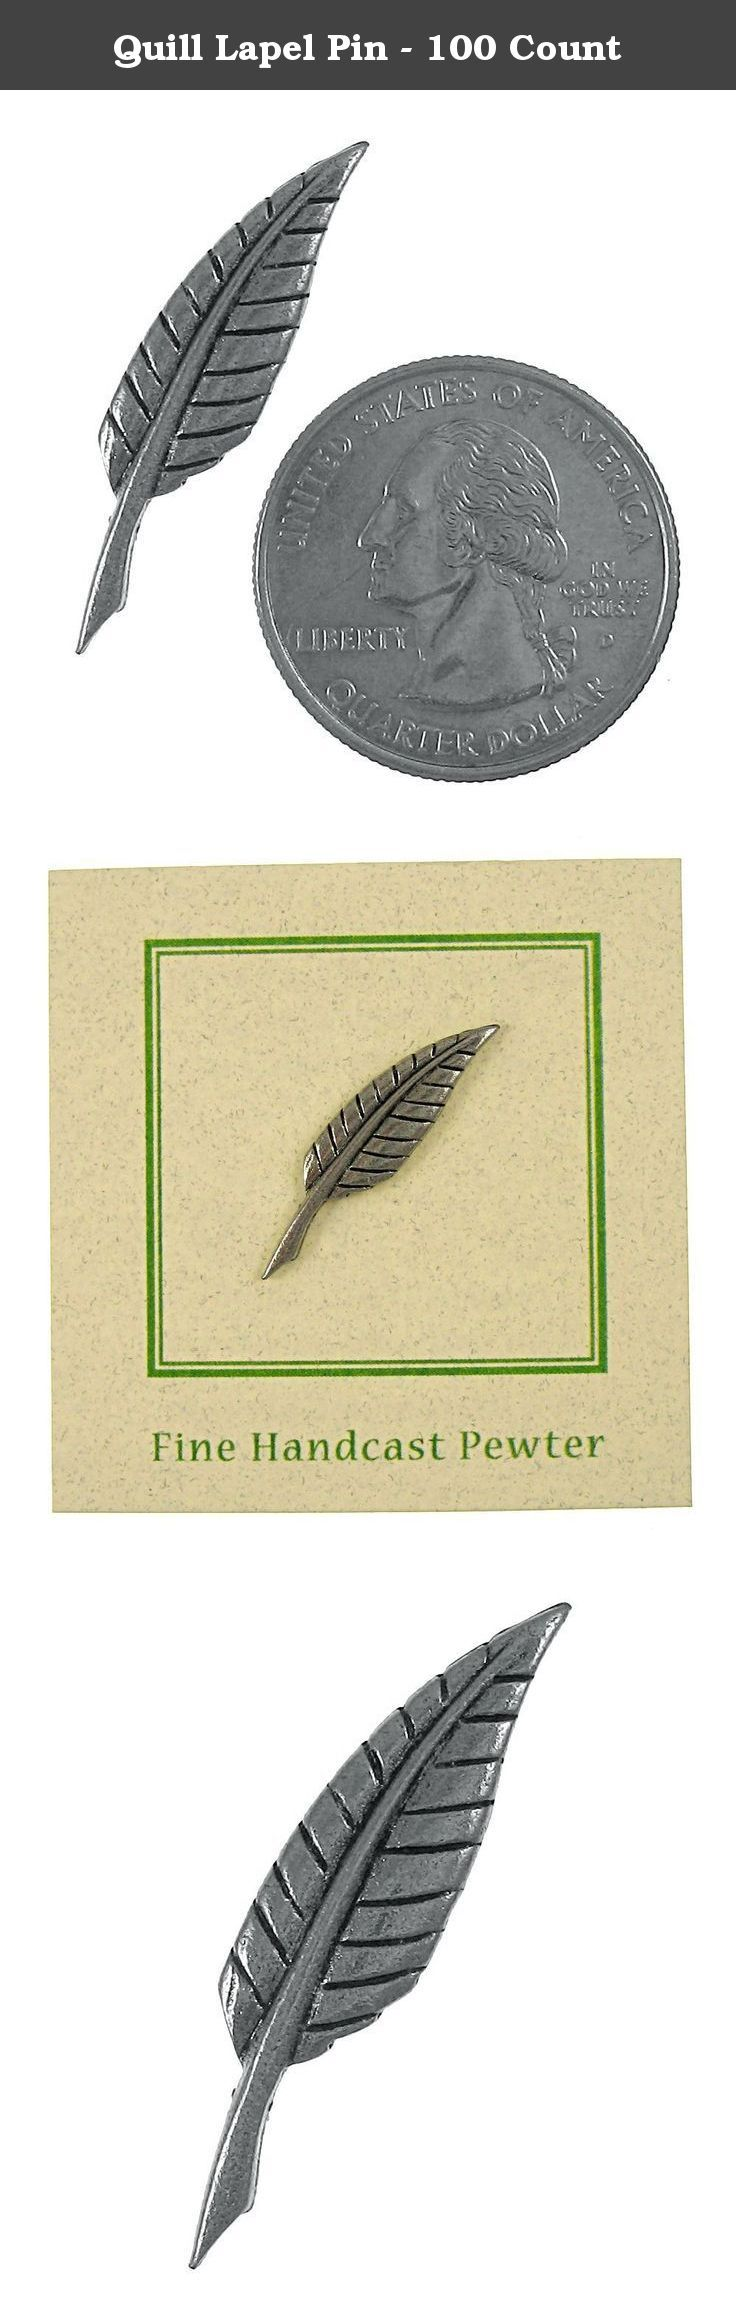 Quill Lapel Pin - 100 Count. Quill pens and inkpots were a standard feature in early business offices. Wear a piece of history on your lapel with our quill pin. Handcast in solid, lead-free pewter, each of our pins is an original three dimensional sculpture signed by the artist, Jim Clift. Handcrafted in our studio in Coventry, RI, our pins are 100% US made.